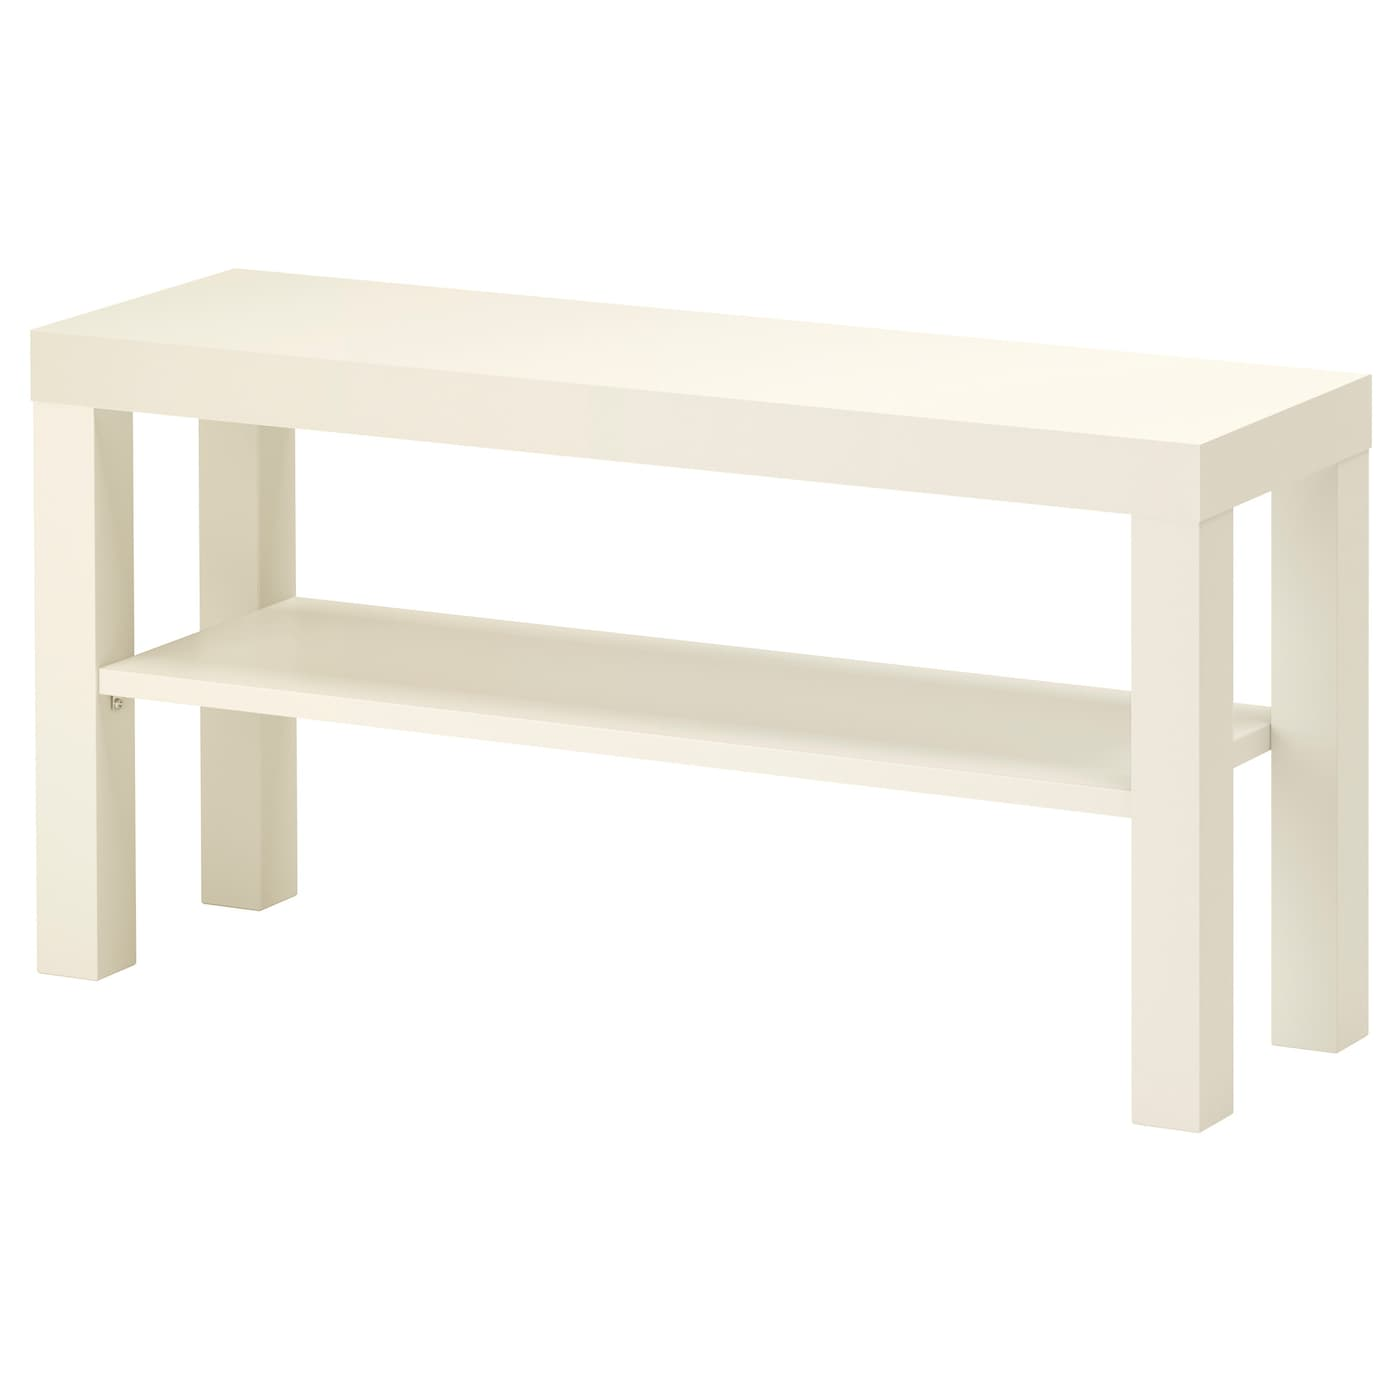 Kaufladen selber bauen mit ikea billy beauty salon - Ikea table tv ...